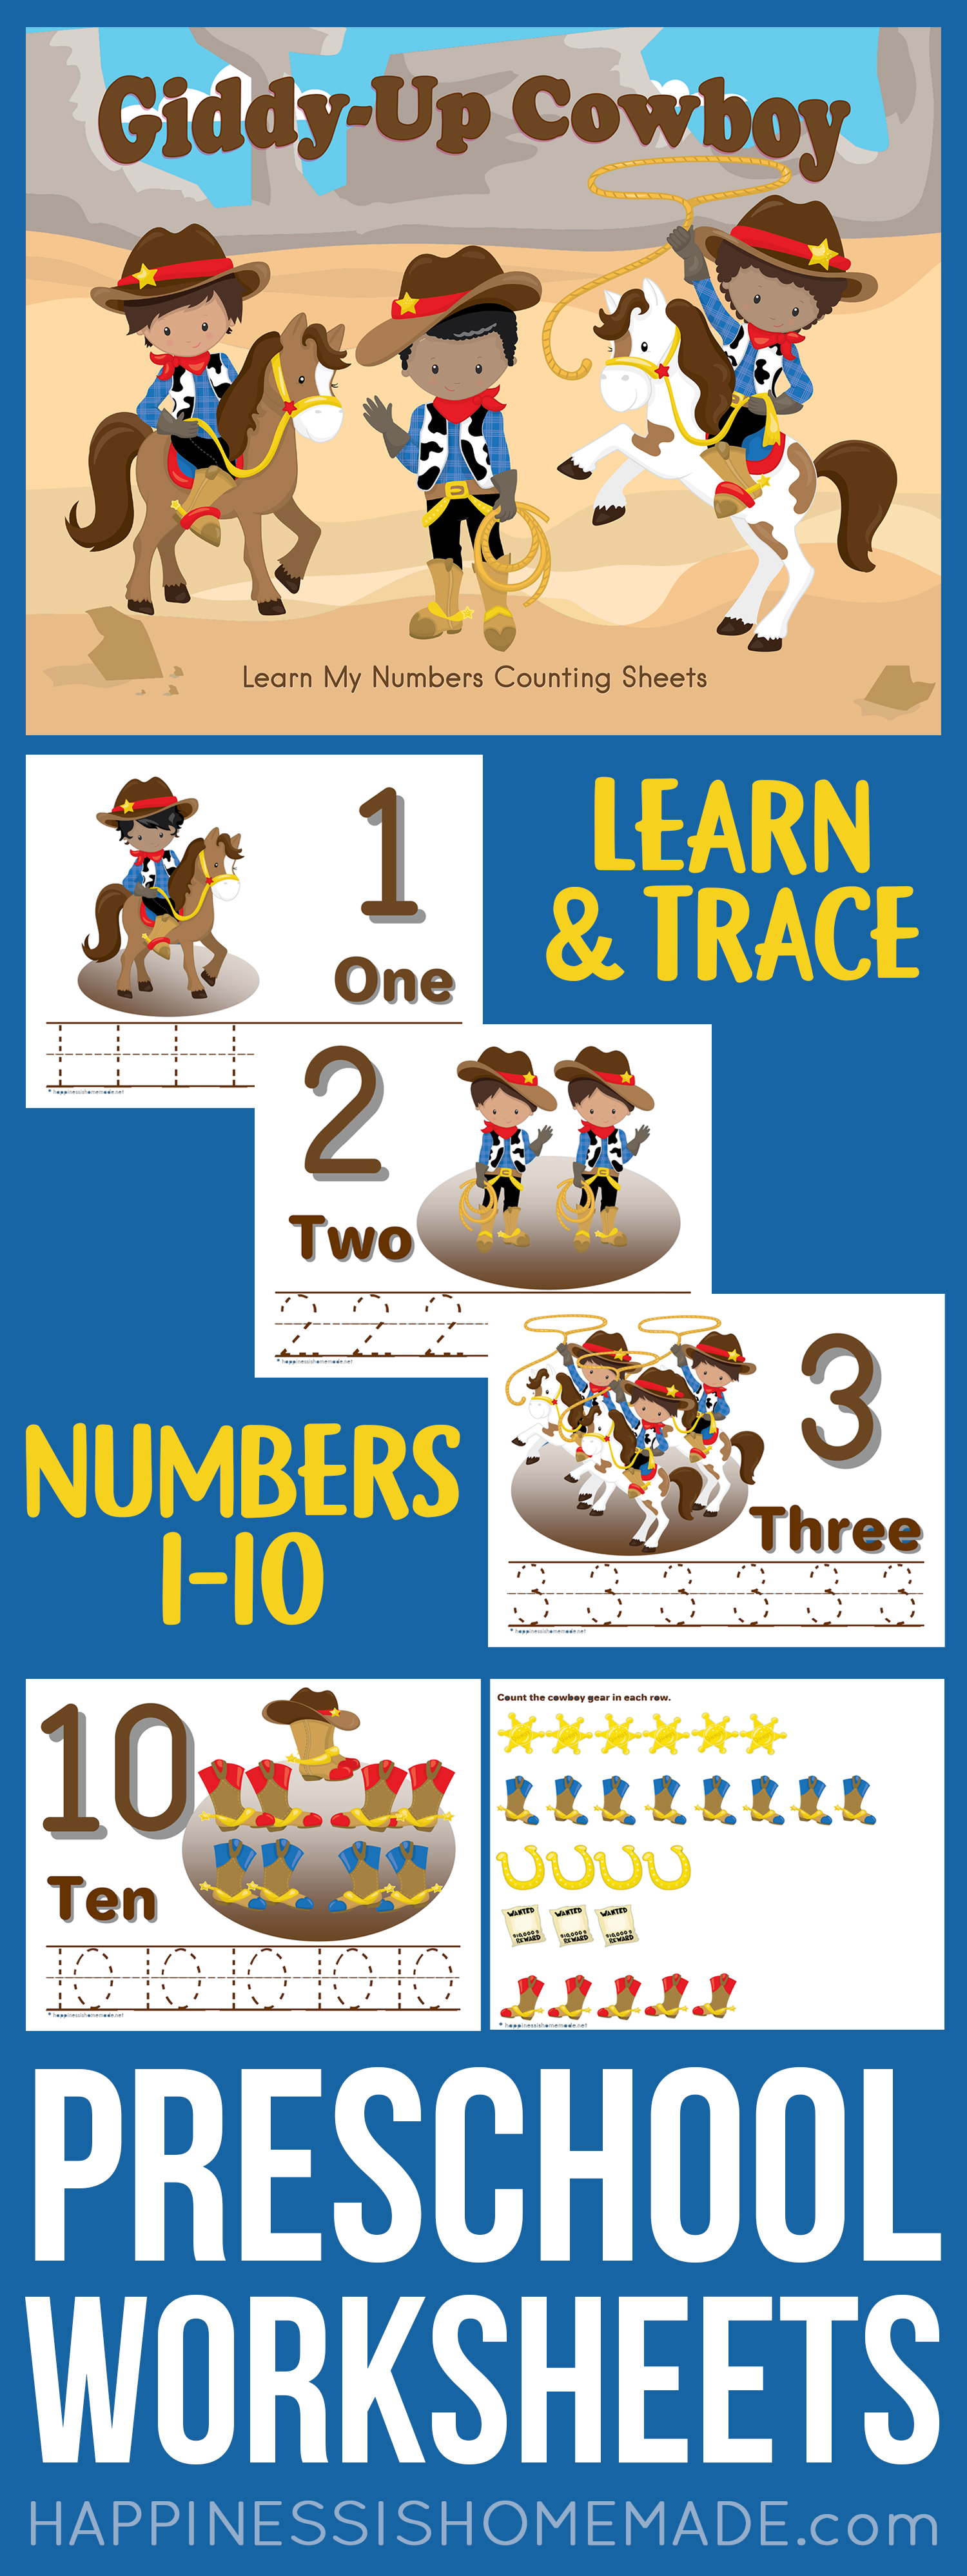 Preschool Worksheets: Counting & Number Tracing Worksheets ...